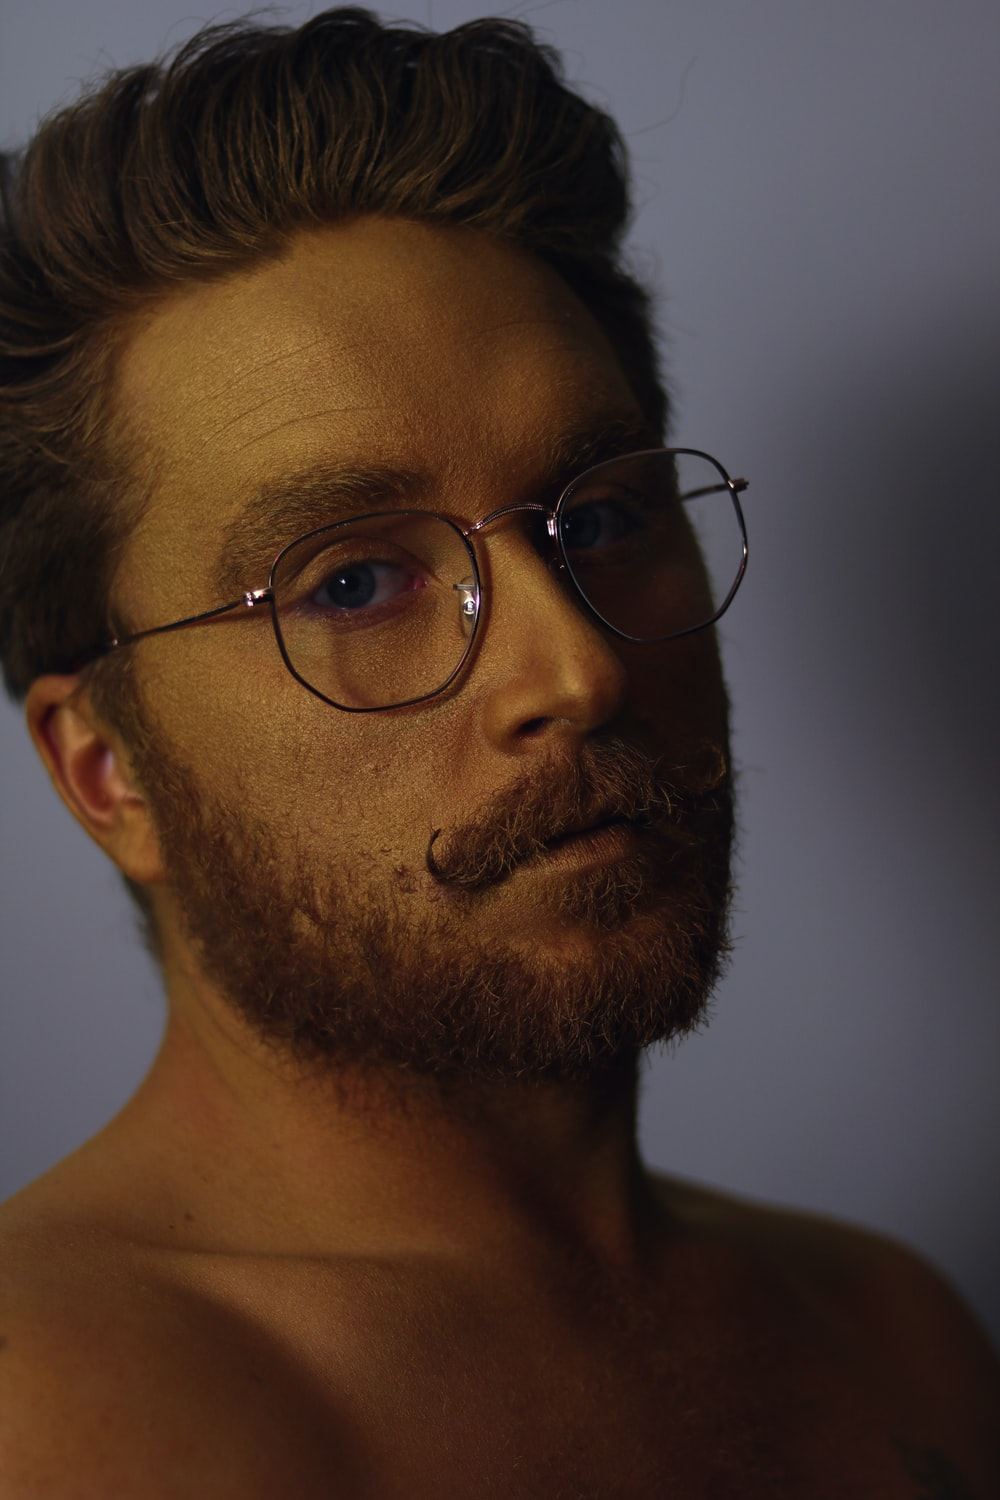 shallow focus photo of man wearing eyeglasses